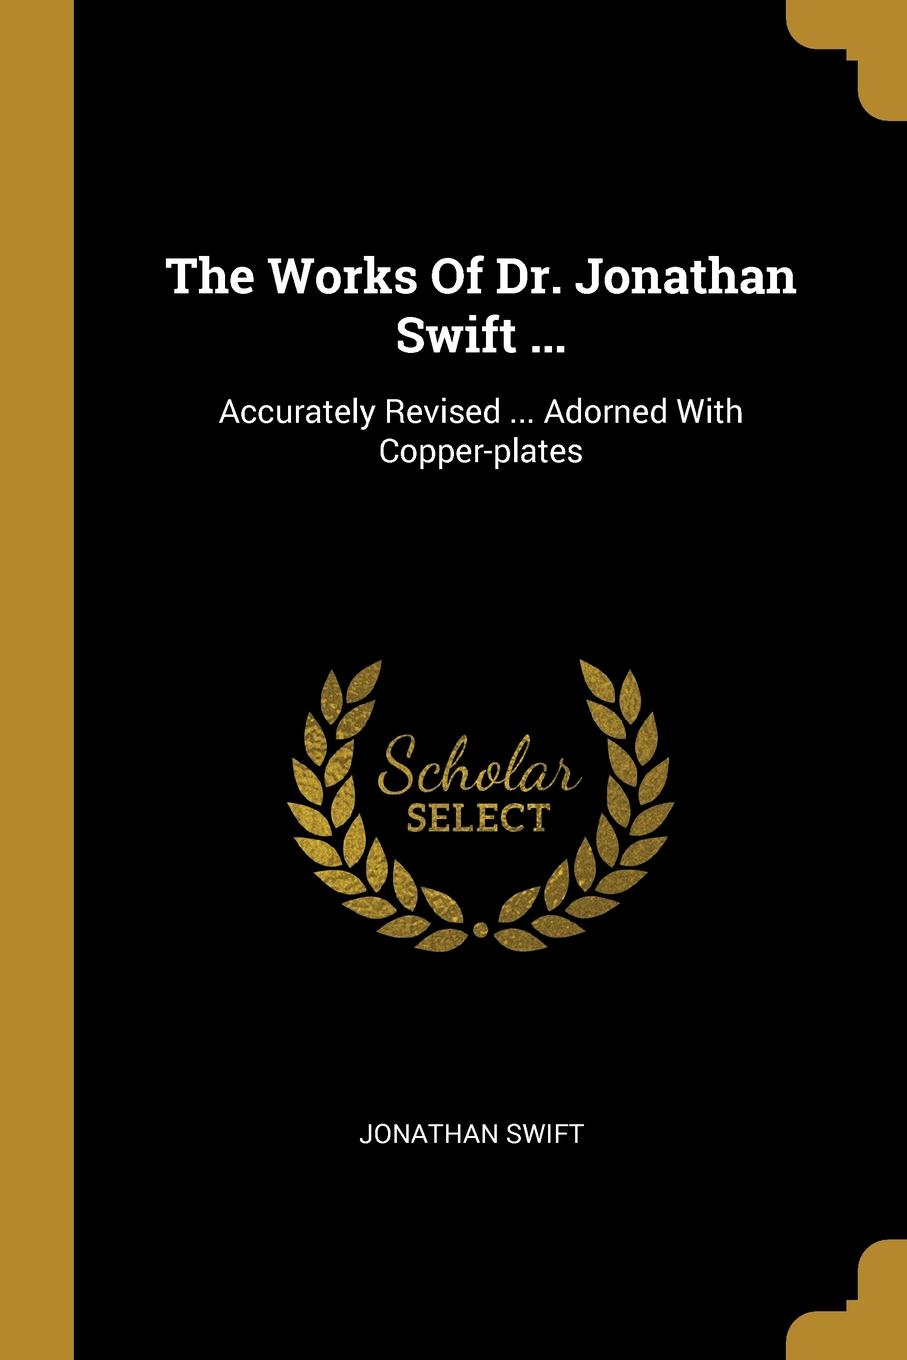 The Works Of Dr. Jonathan Swift ... Accurately Revised ... Adorned With Copper-plates